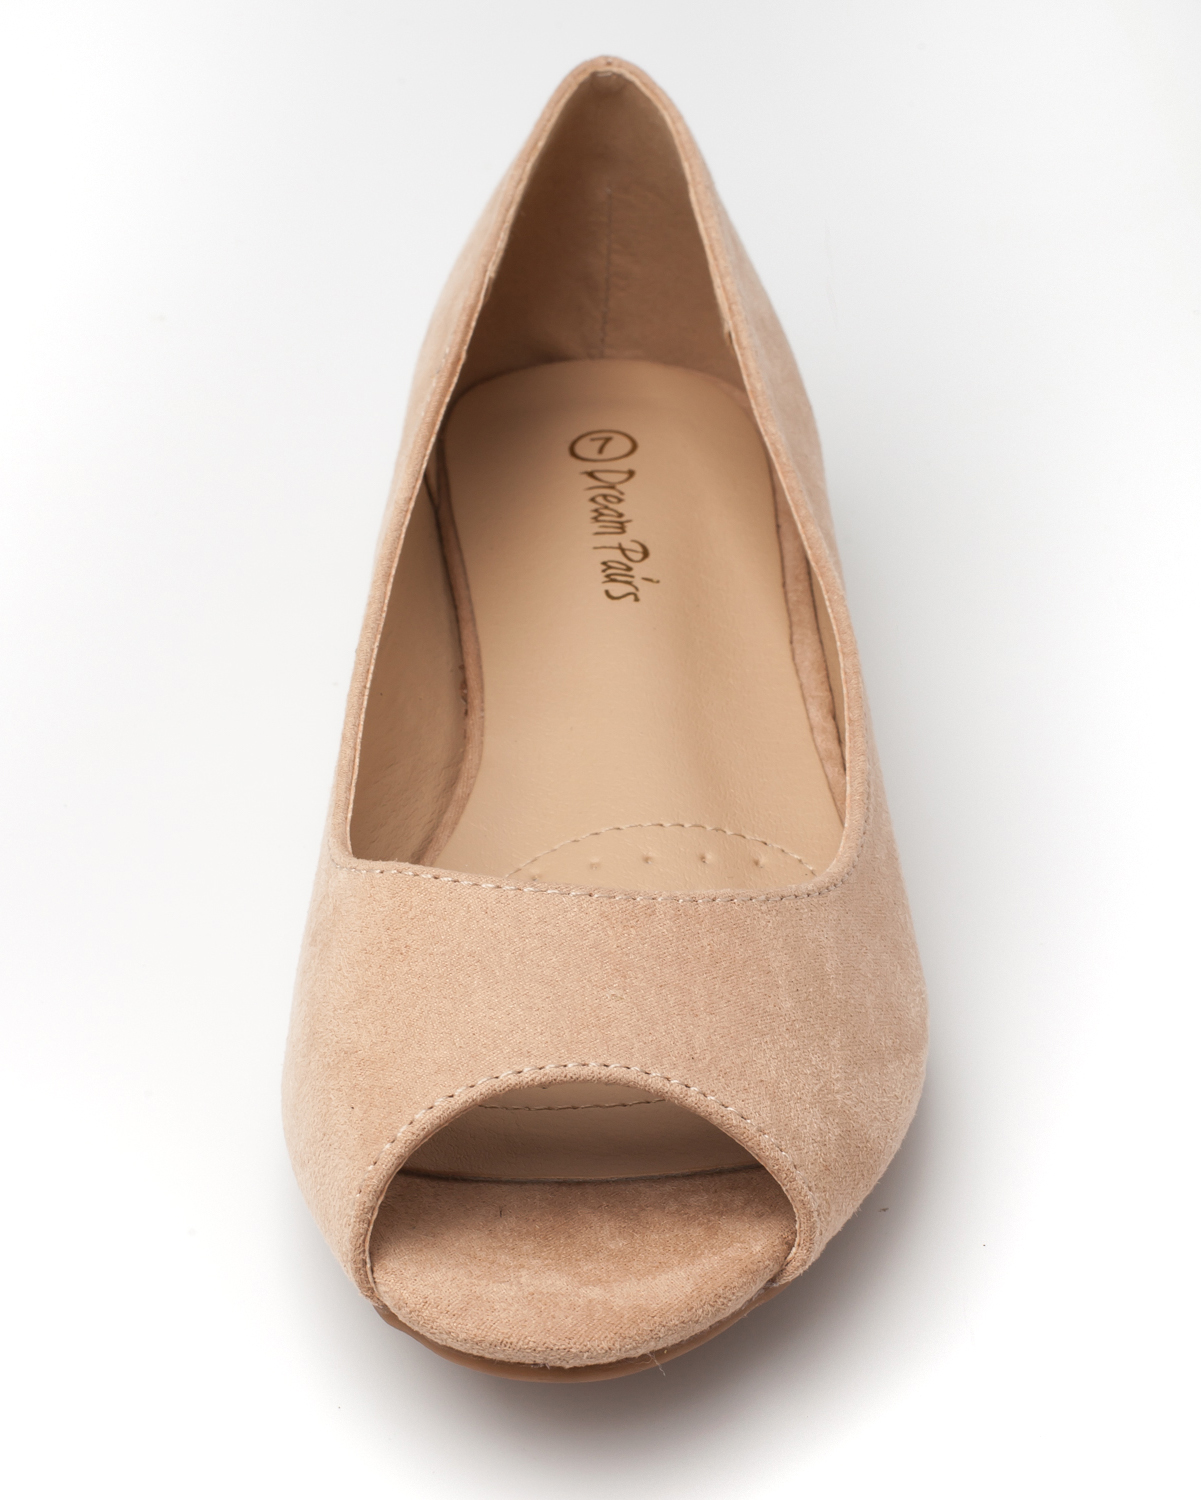 DREAM-PAIRS-Womens-Ballet-Flats-Low-Heel-Open-Toe-Slip-On-Dress-Flat-Shoes thumbnail 41